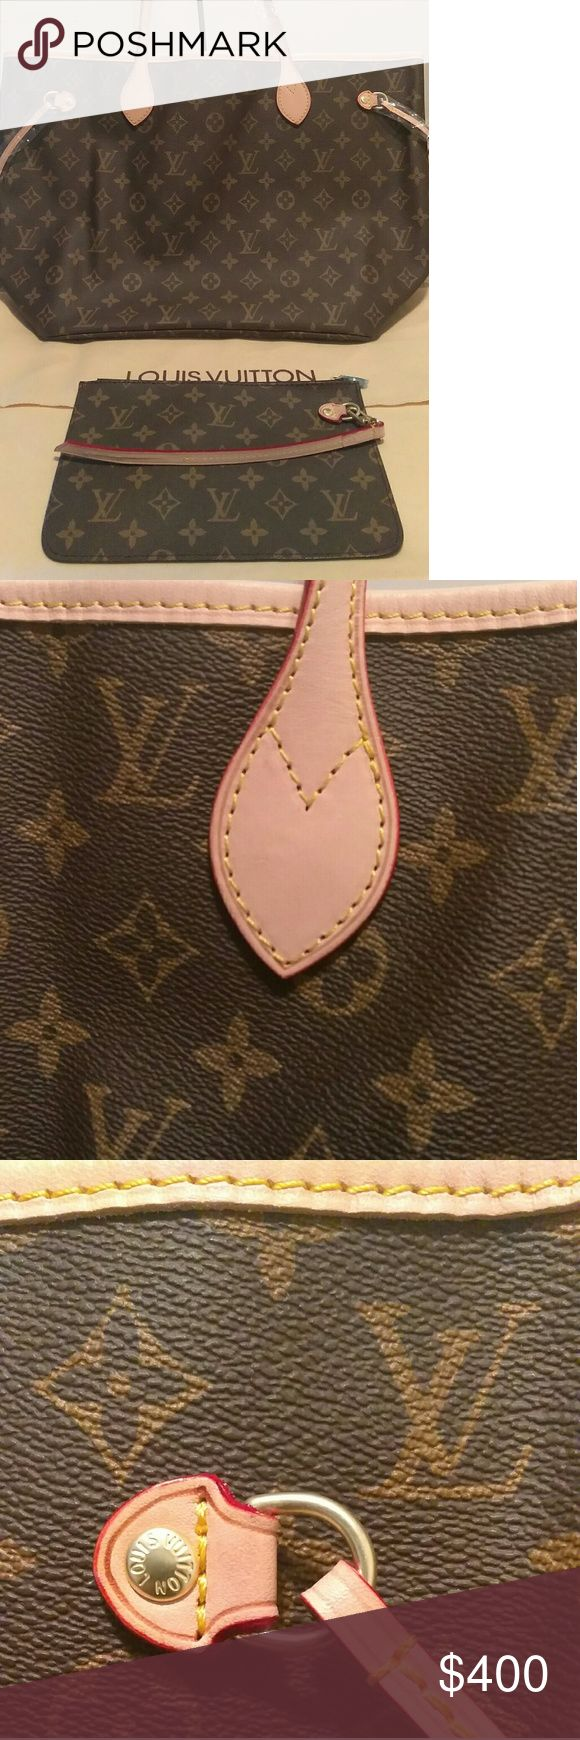 """Neverfull MM Bag Brand New """"inspired"""" Neverfull MM bag Monogram beige interior! """"Real genuine leather"""" comes with pouchette,dust bag,date code and care booklet. This is the perfect everyday handbag and promise to be a head turner!! Guarantee money back if your not satisfied any questions just ask!! Don't miss out ladies and price negotiable but no low balling please!! Free gift with my first sell a OvO hoodie!! Bags Shoulder Bags"""